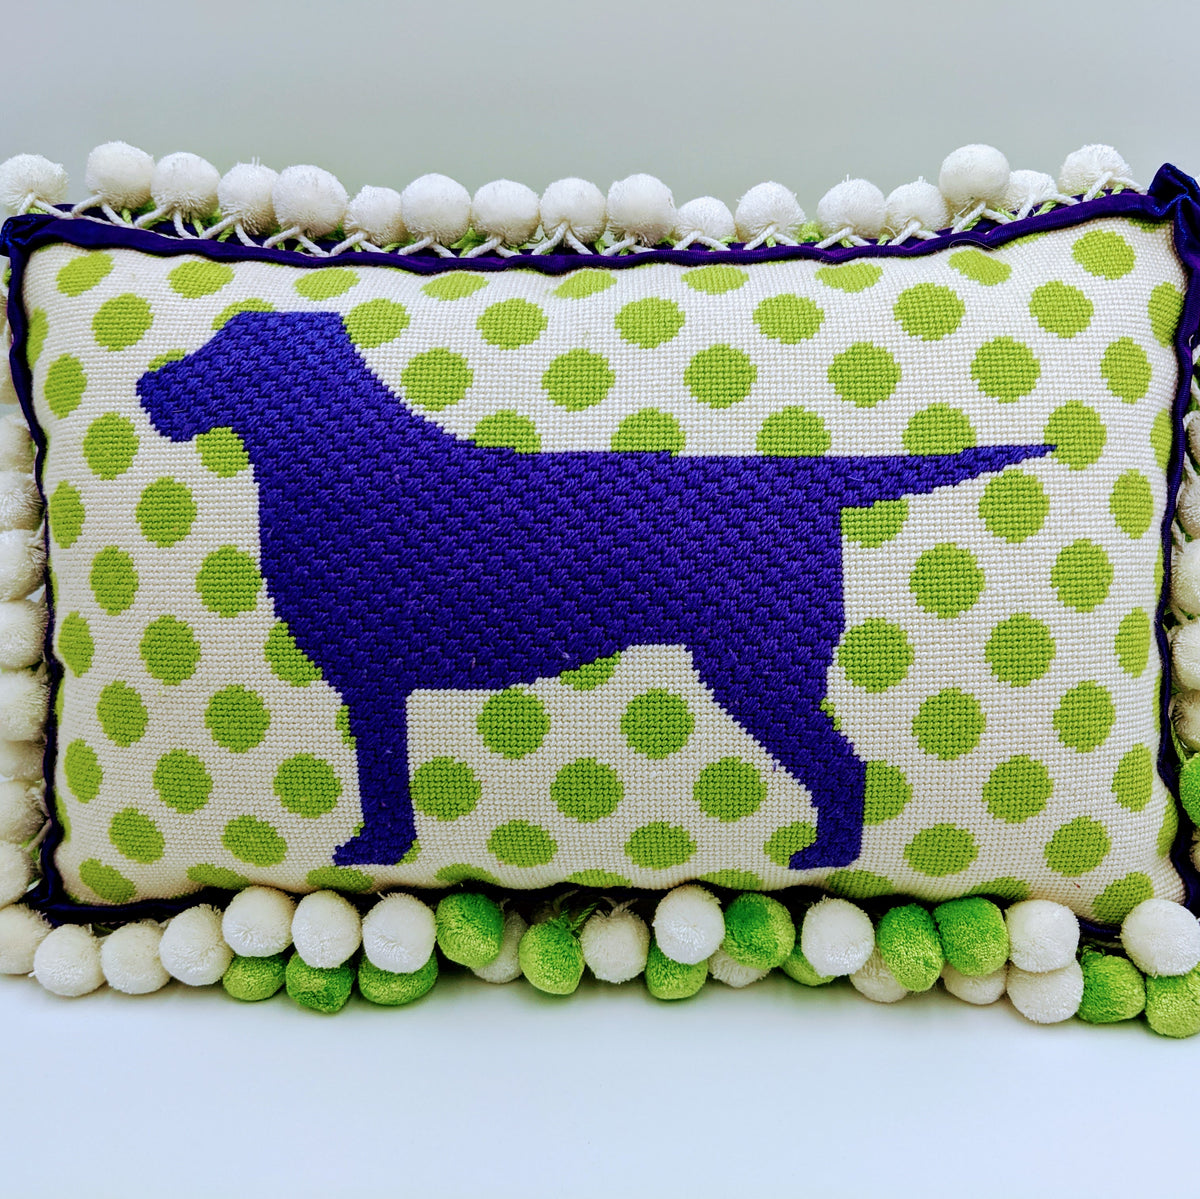 Mod Labrador Pillow Canvas on 13 Mesh